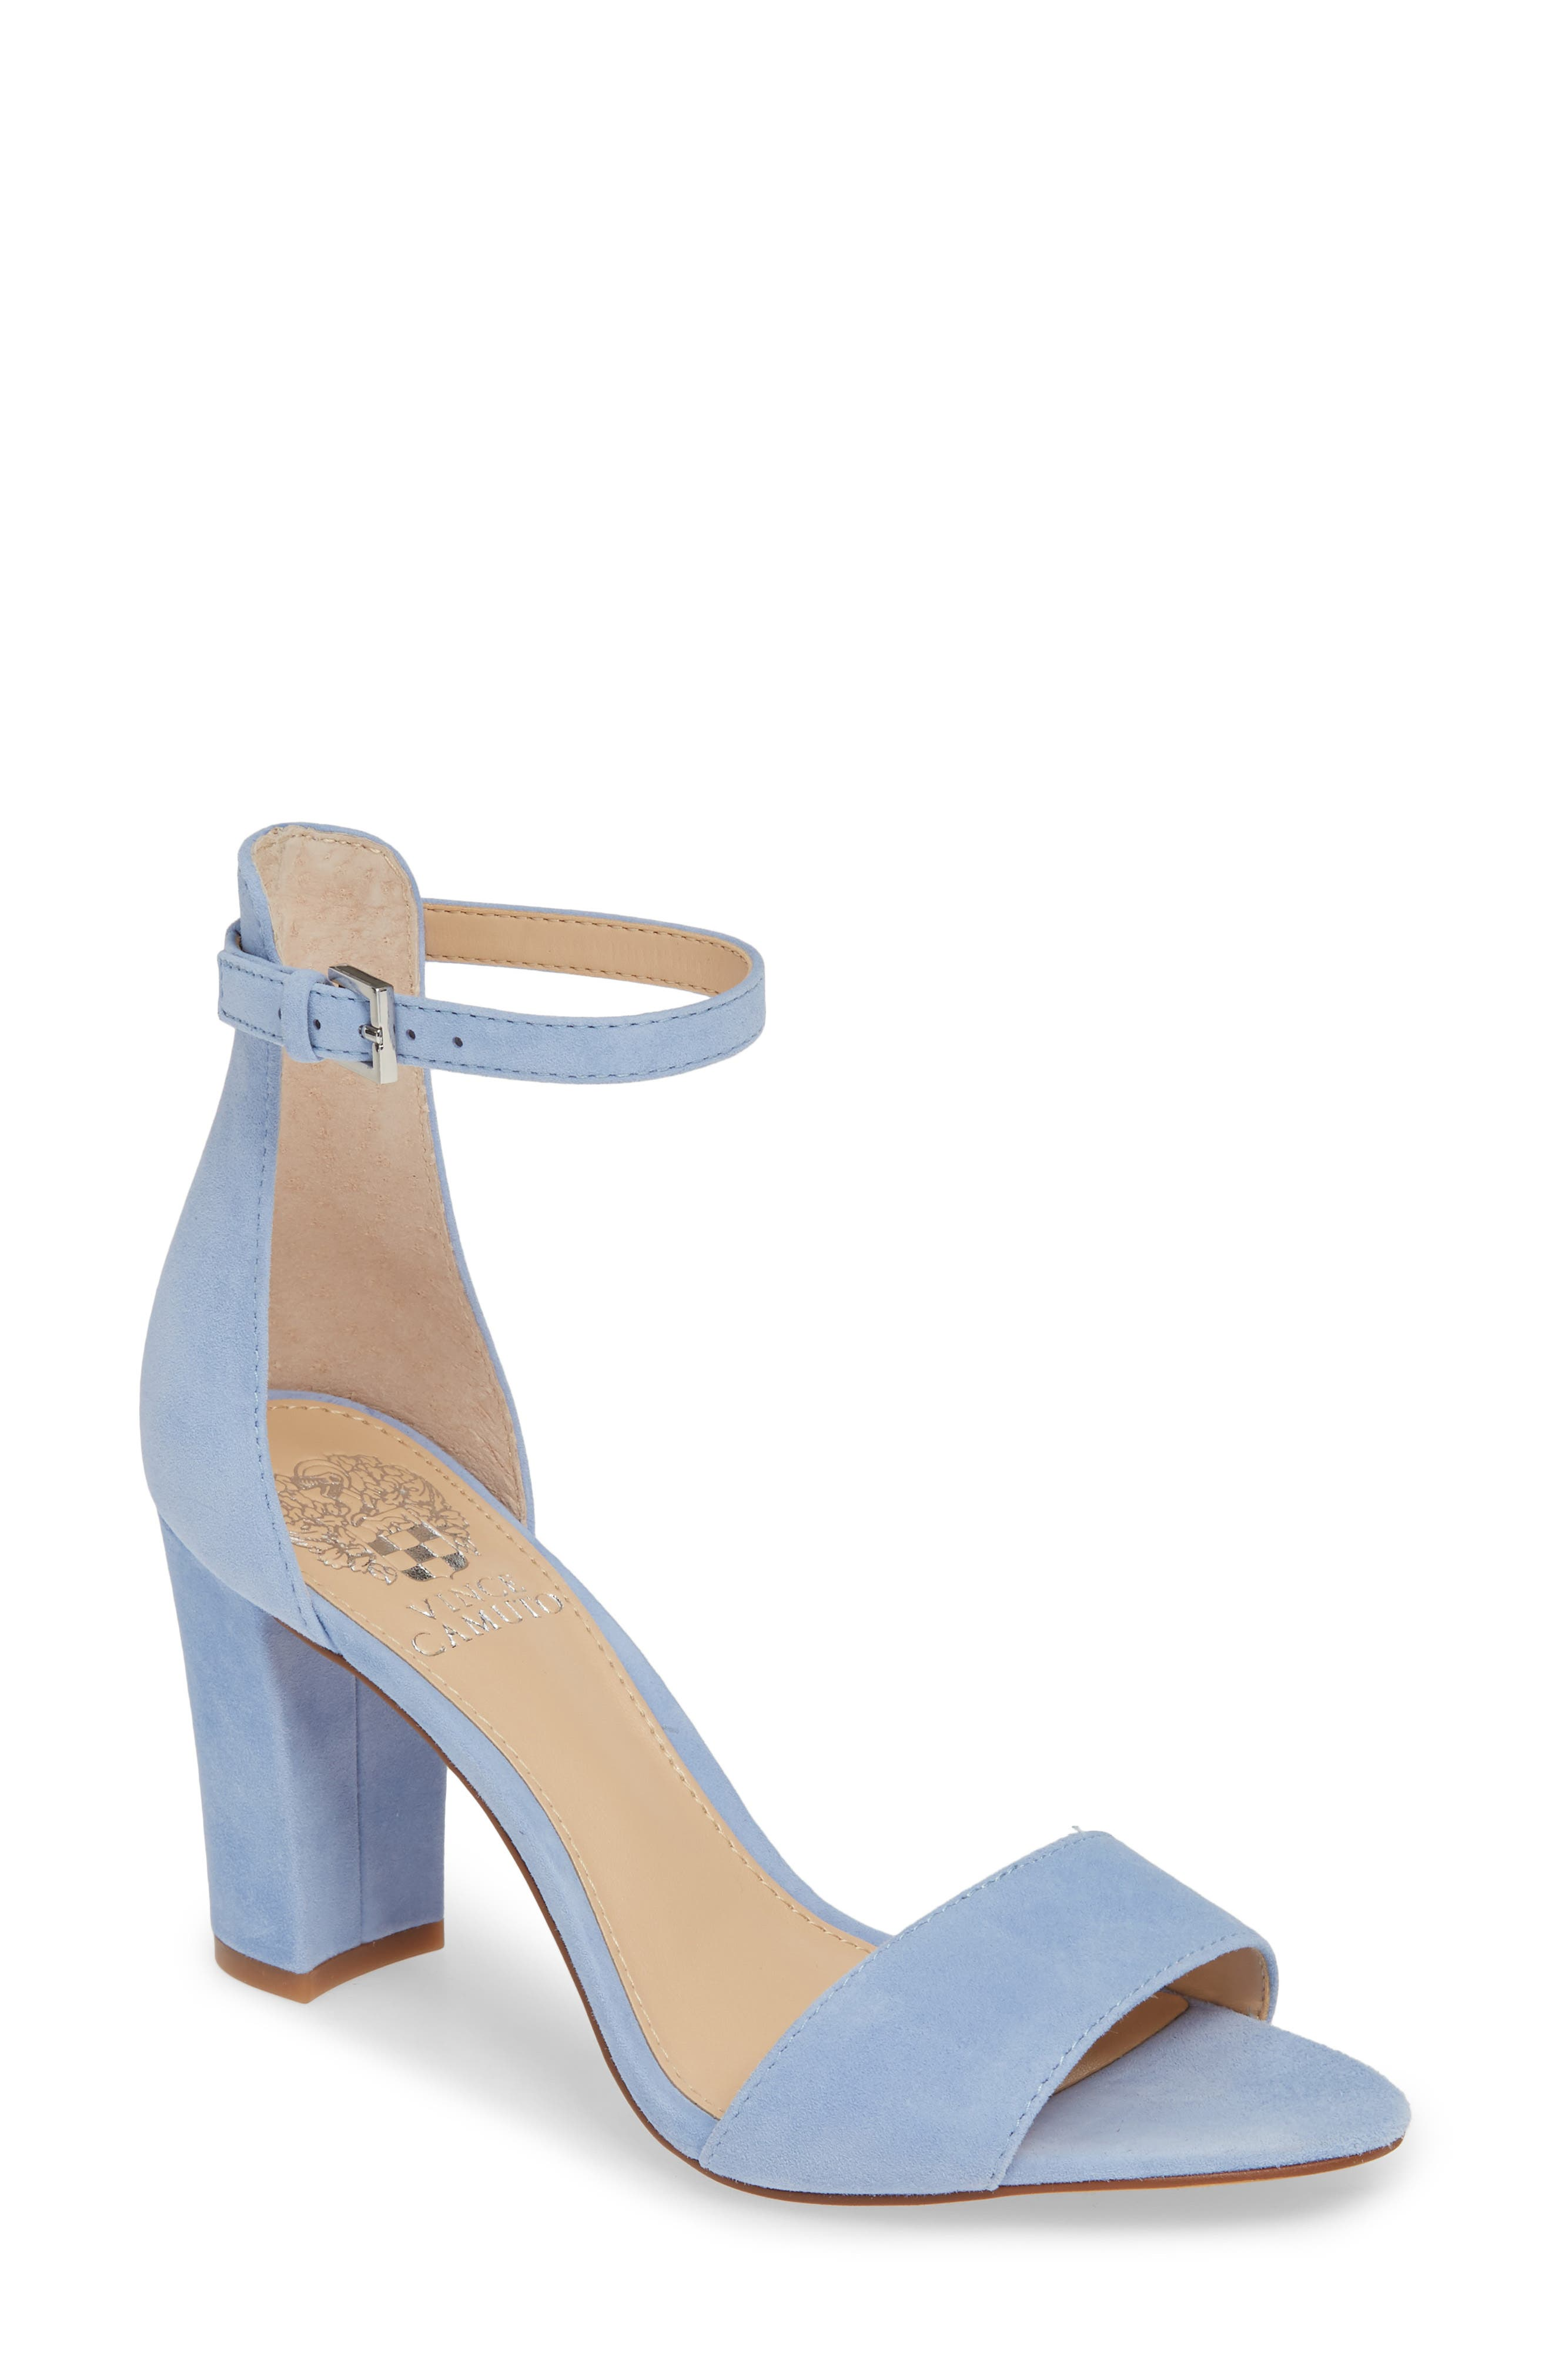 fcf5f36c9 Women's Vince Camuto Shoes   Nordstrom